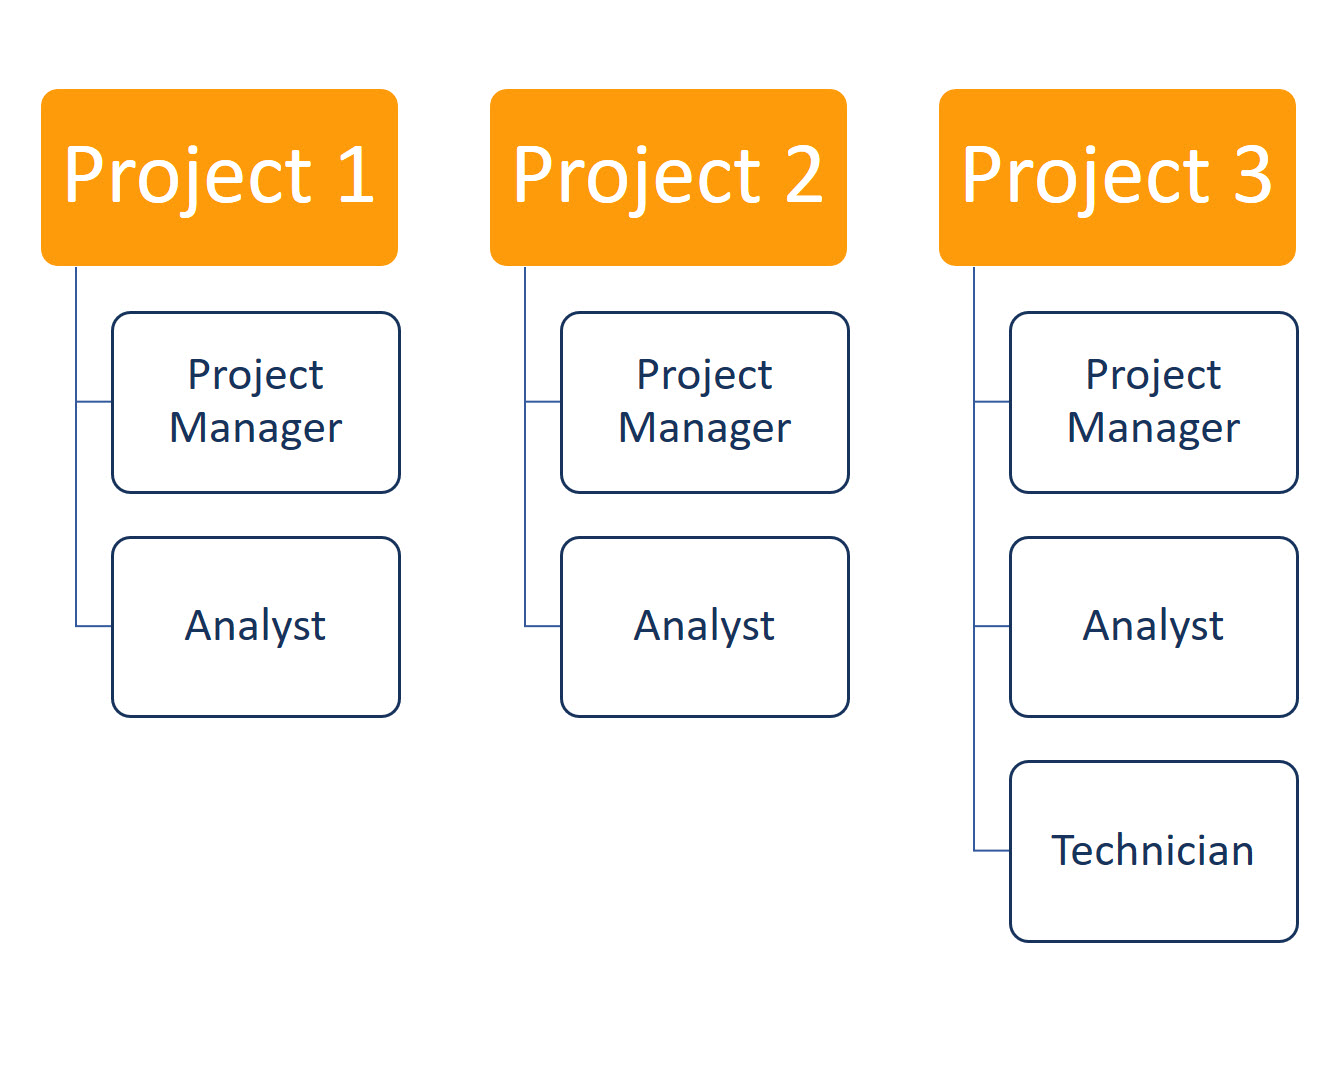 Example Of Organizational Structures Simplified Model Projectized Structure With 3 Projects On Vertical